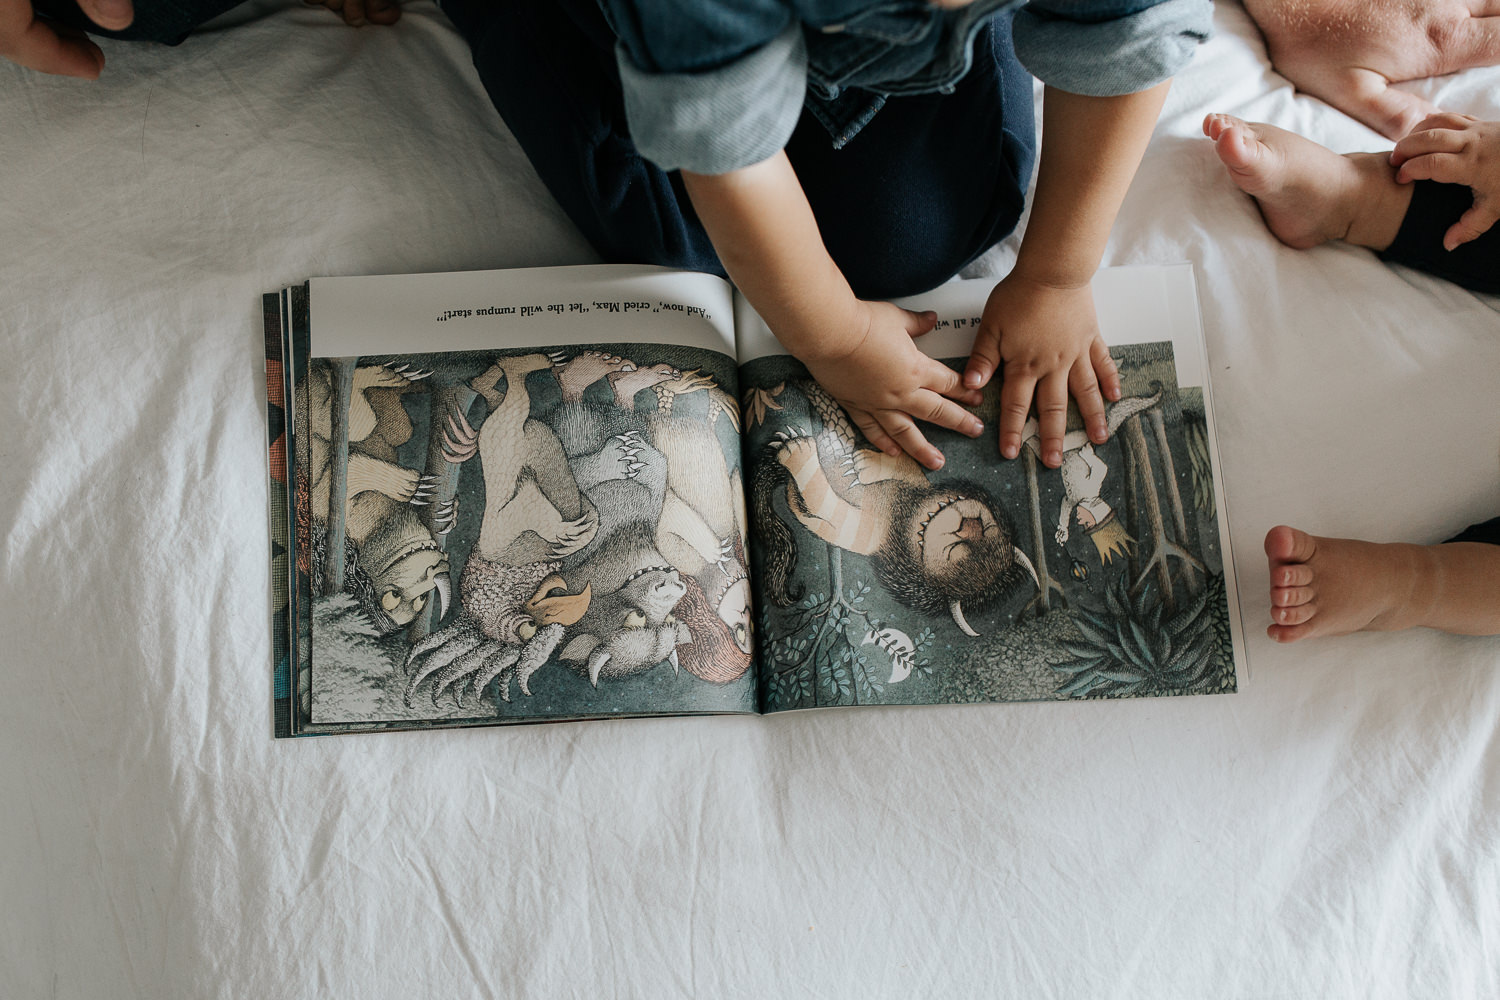 2 year old boy sitting on bed reading where the wild things are, hands reaching out to touch picture in book - Barrie In-Home Photos